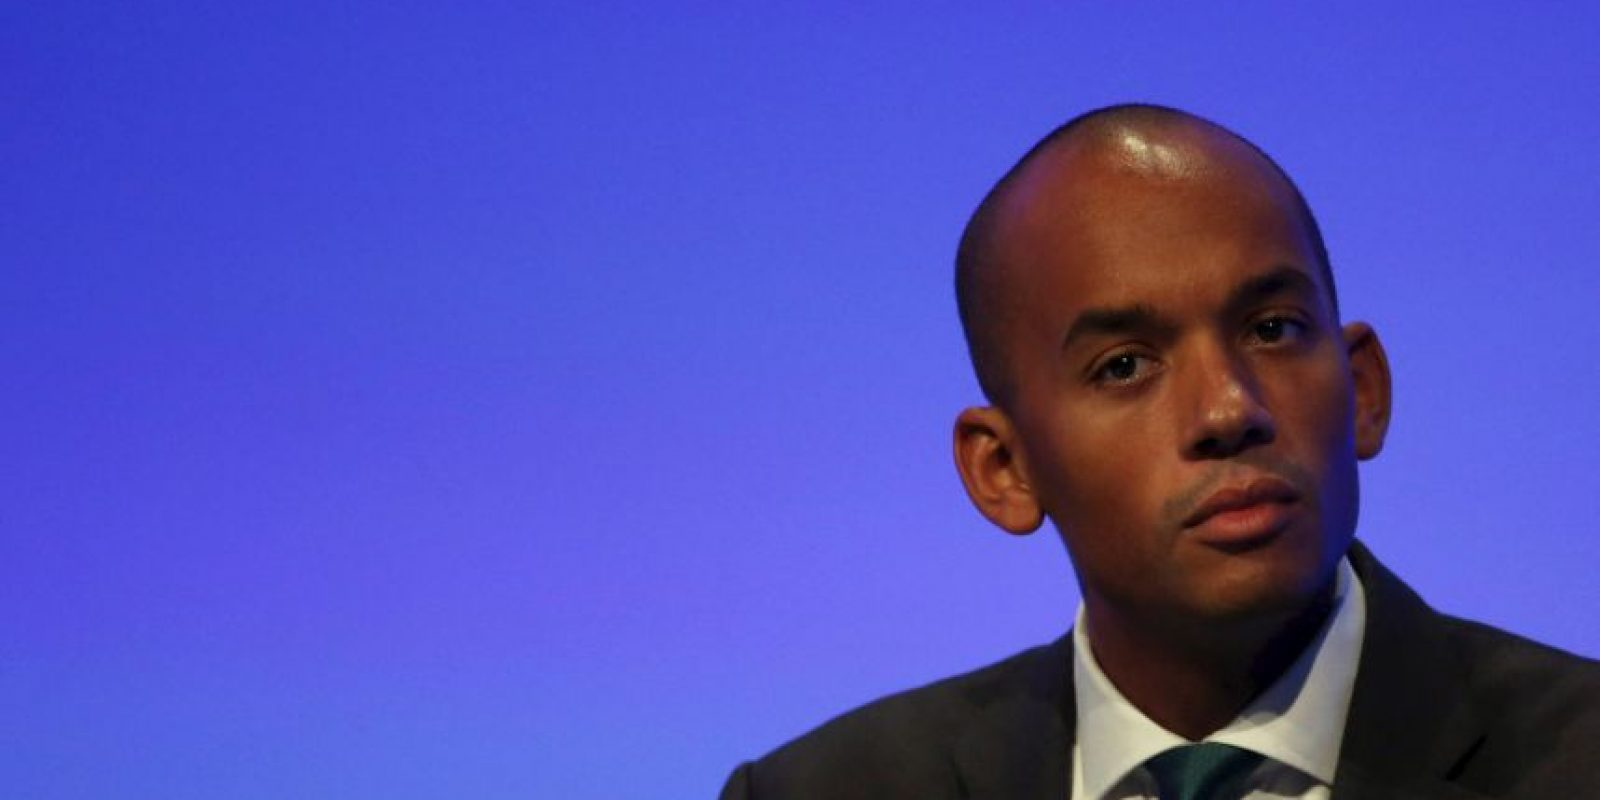 3. Chuka Umunna, Reino Unido. Foto: Getty Images